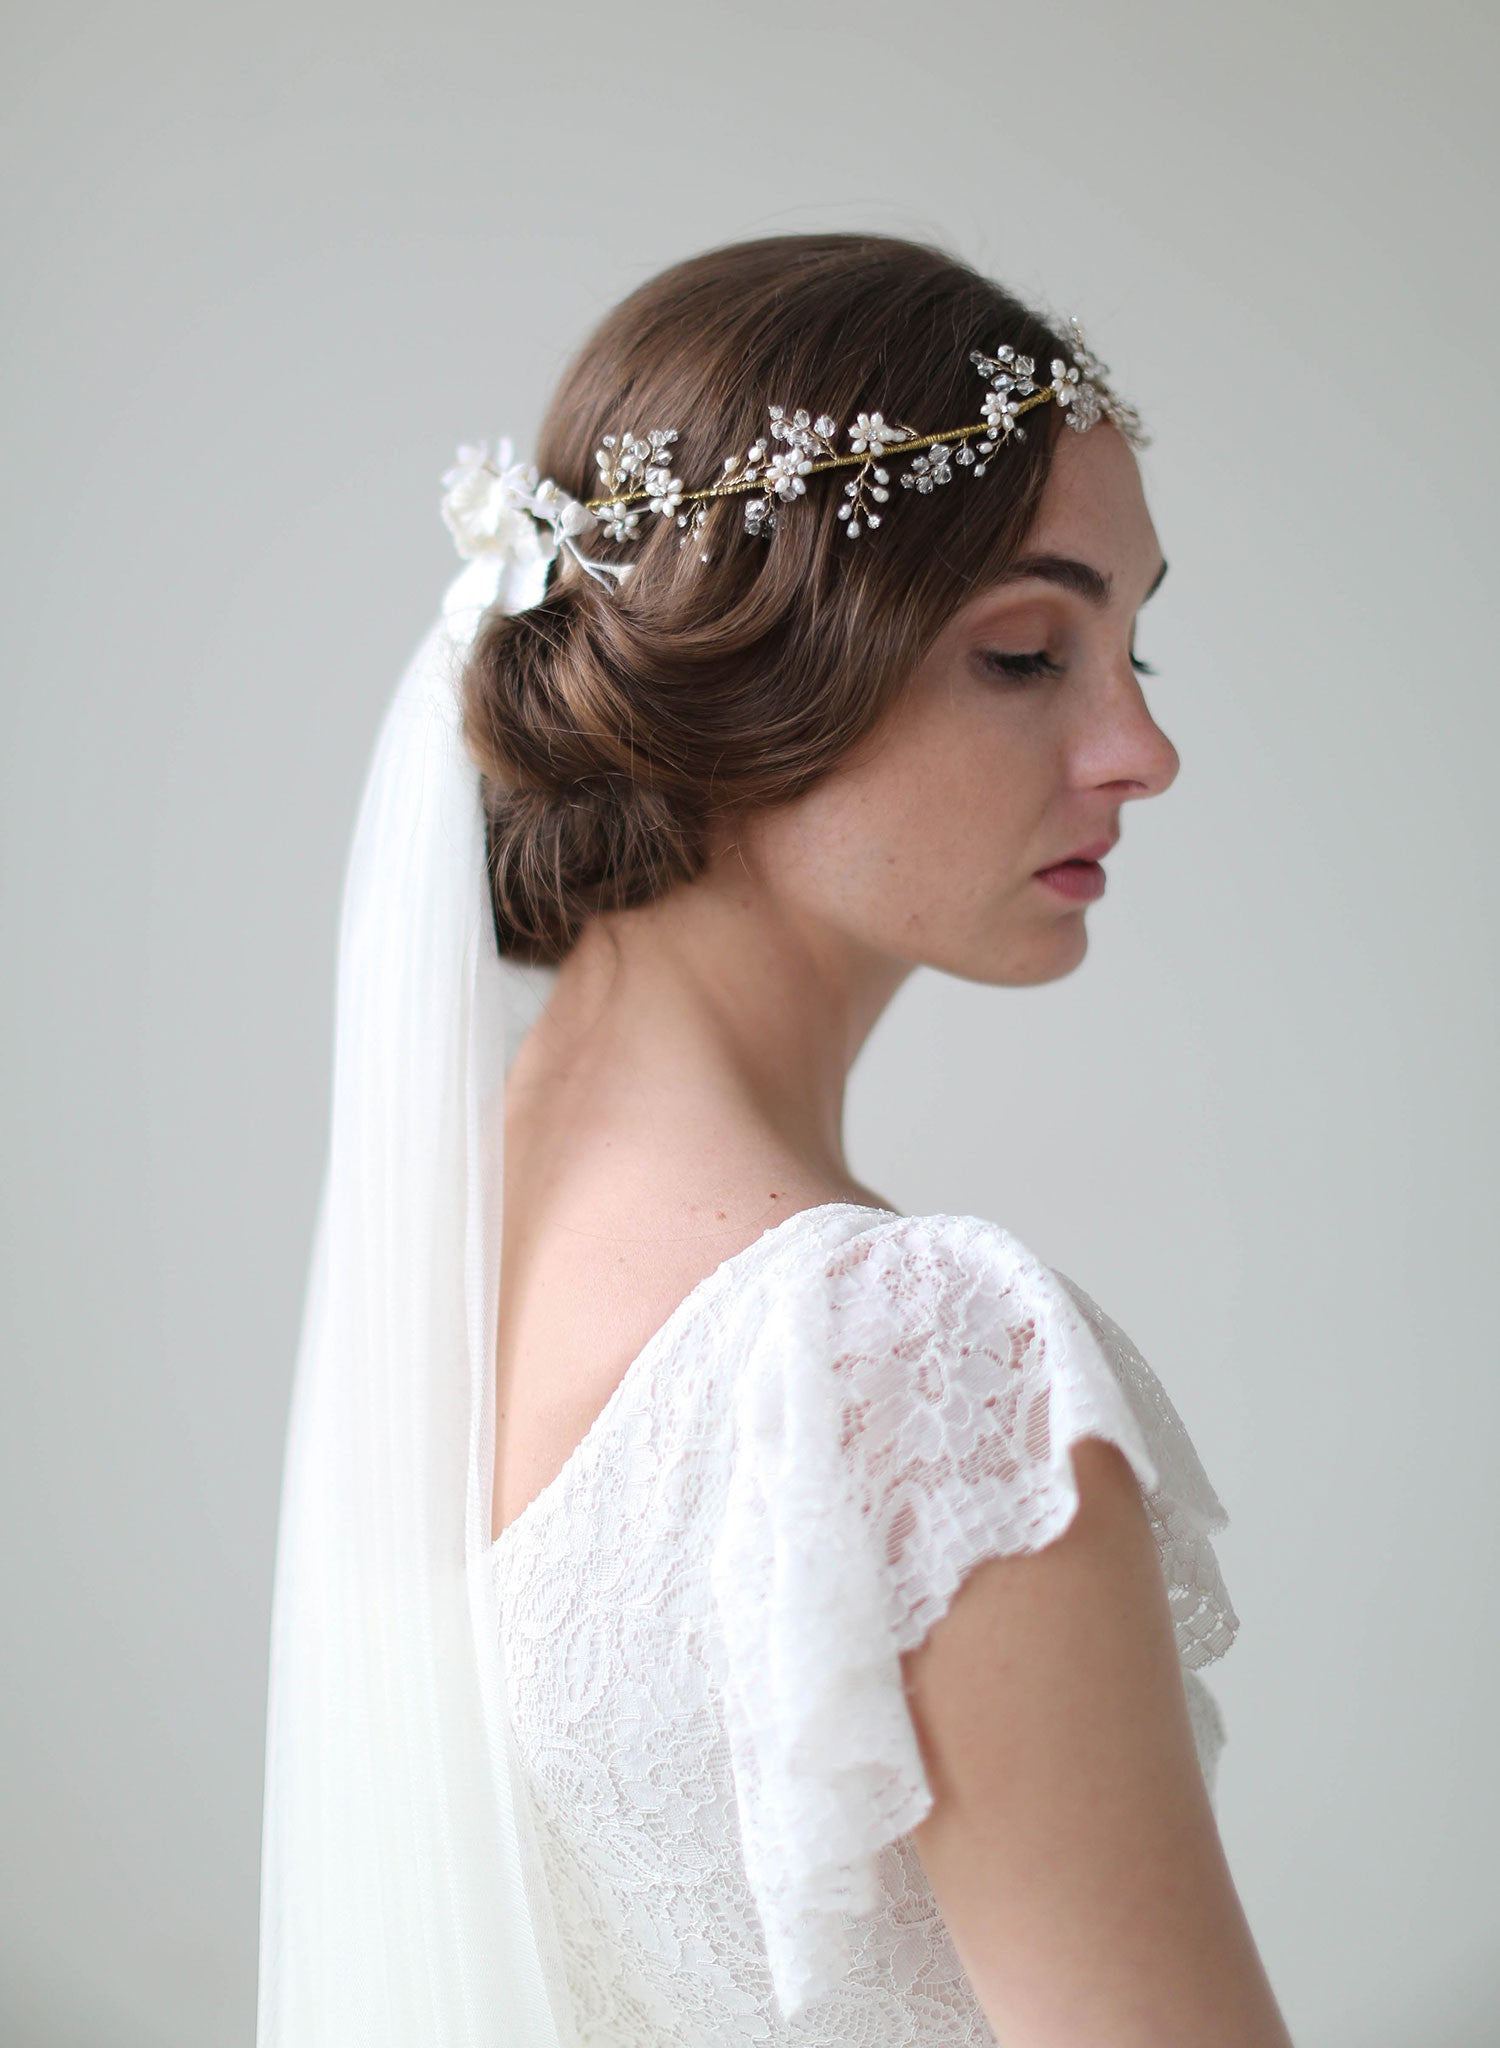 Crystal Blossom Full Crown Lux Train Veil Vintage Inspired Bridal Wedding